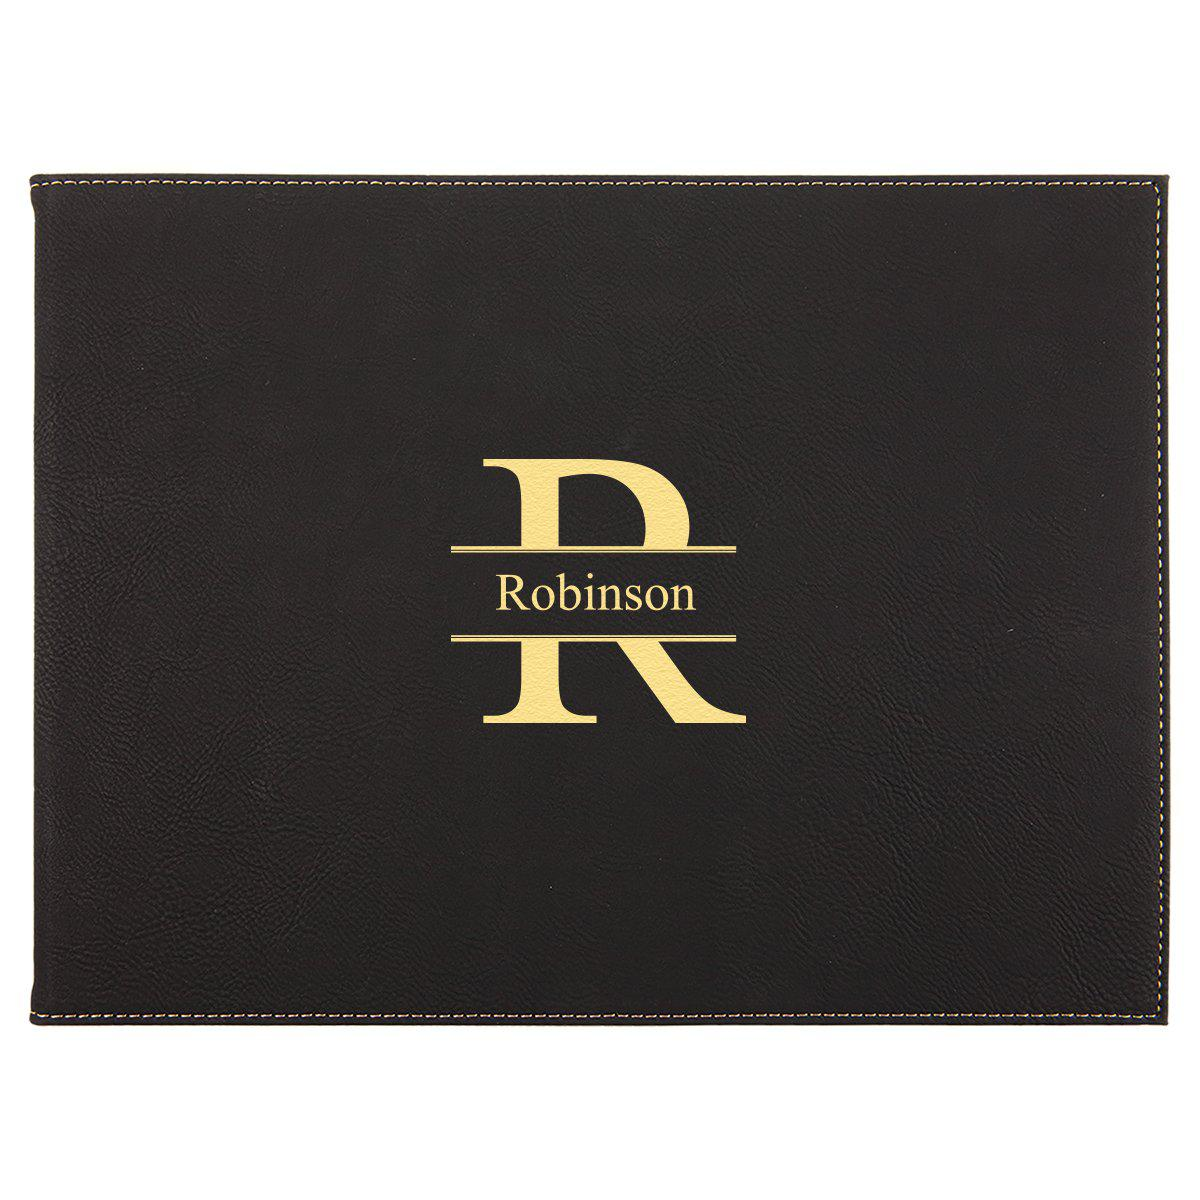 Personalized Certificate Holder 9� x 12� - Black